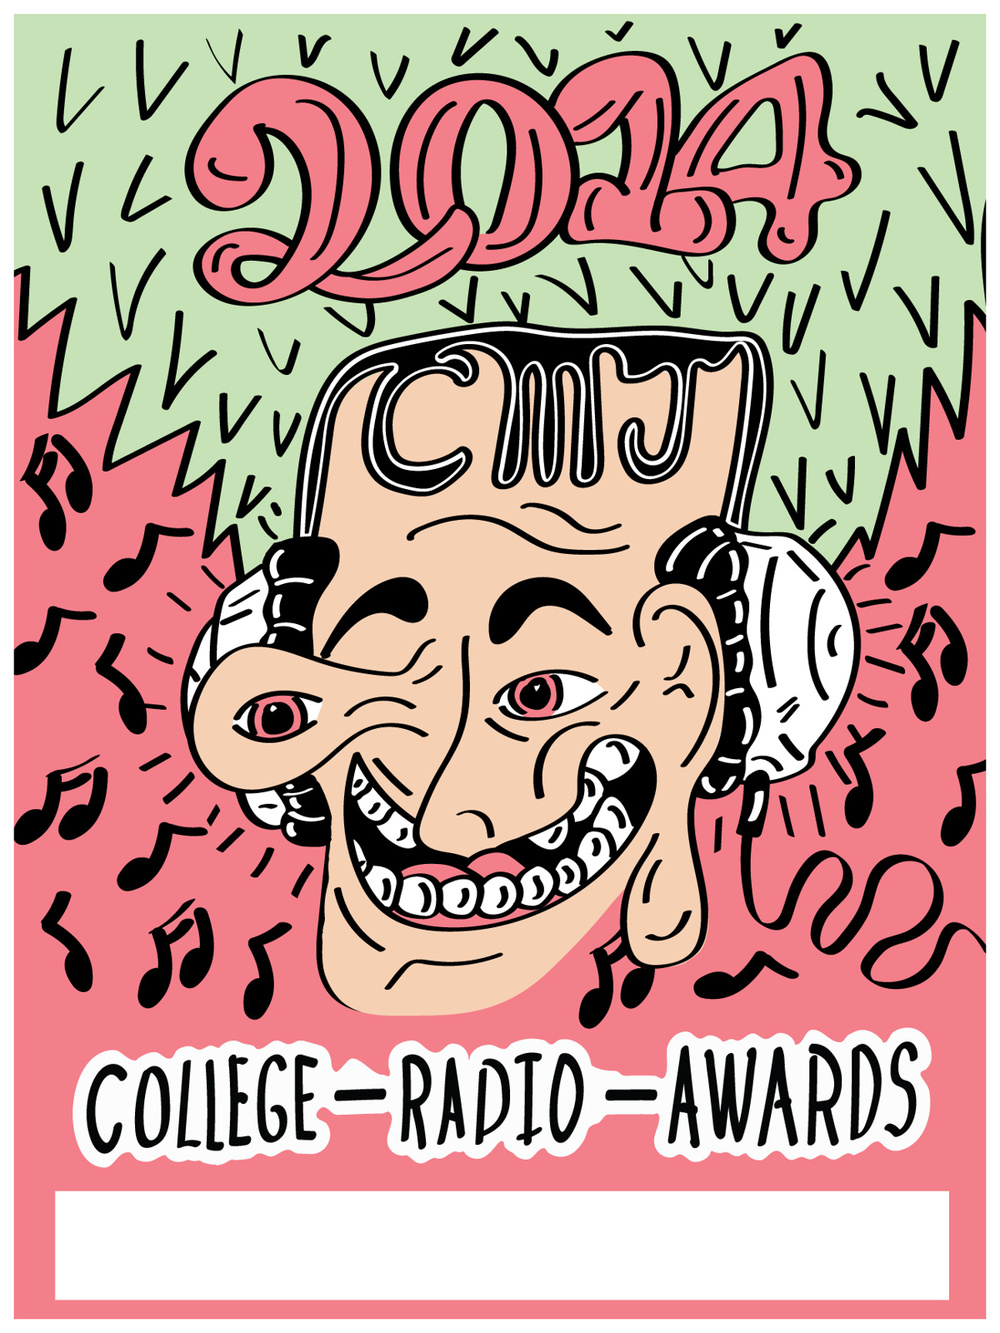 While in my second year of work at CMJ, I was asked to design a screen-printed College Radio Awards poster. Of course I was very excited about the project and decided to push the envelope a bit. I know that the students look forward to these awards and I wanted to make something that really stuck out and was bright and colorful. I decided to go with this psychedelic melting Picasso-like face with massive green hair. I was limited to four colors for the print. Working with that limitation, I chose pink as the background for the poster to keep it eye-catching and bold. After adding in the music notes, I noticed it created a look similar to a watermelon. I was happy with the result and even more happy that this poster was approved. As with any print I produce, I numbered and signed the set of 52 prints.